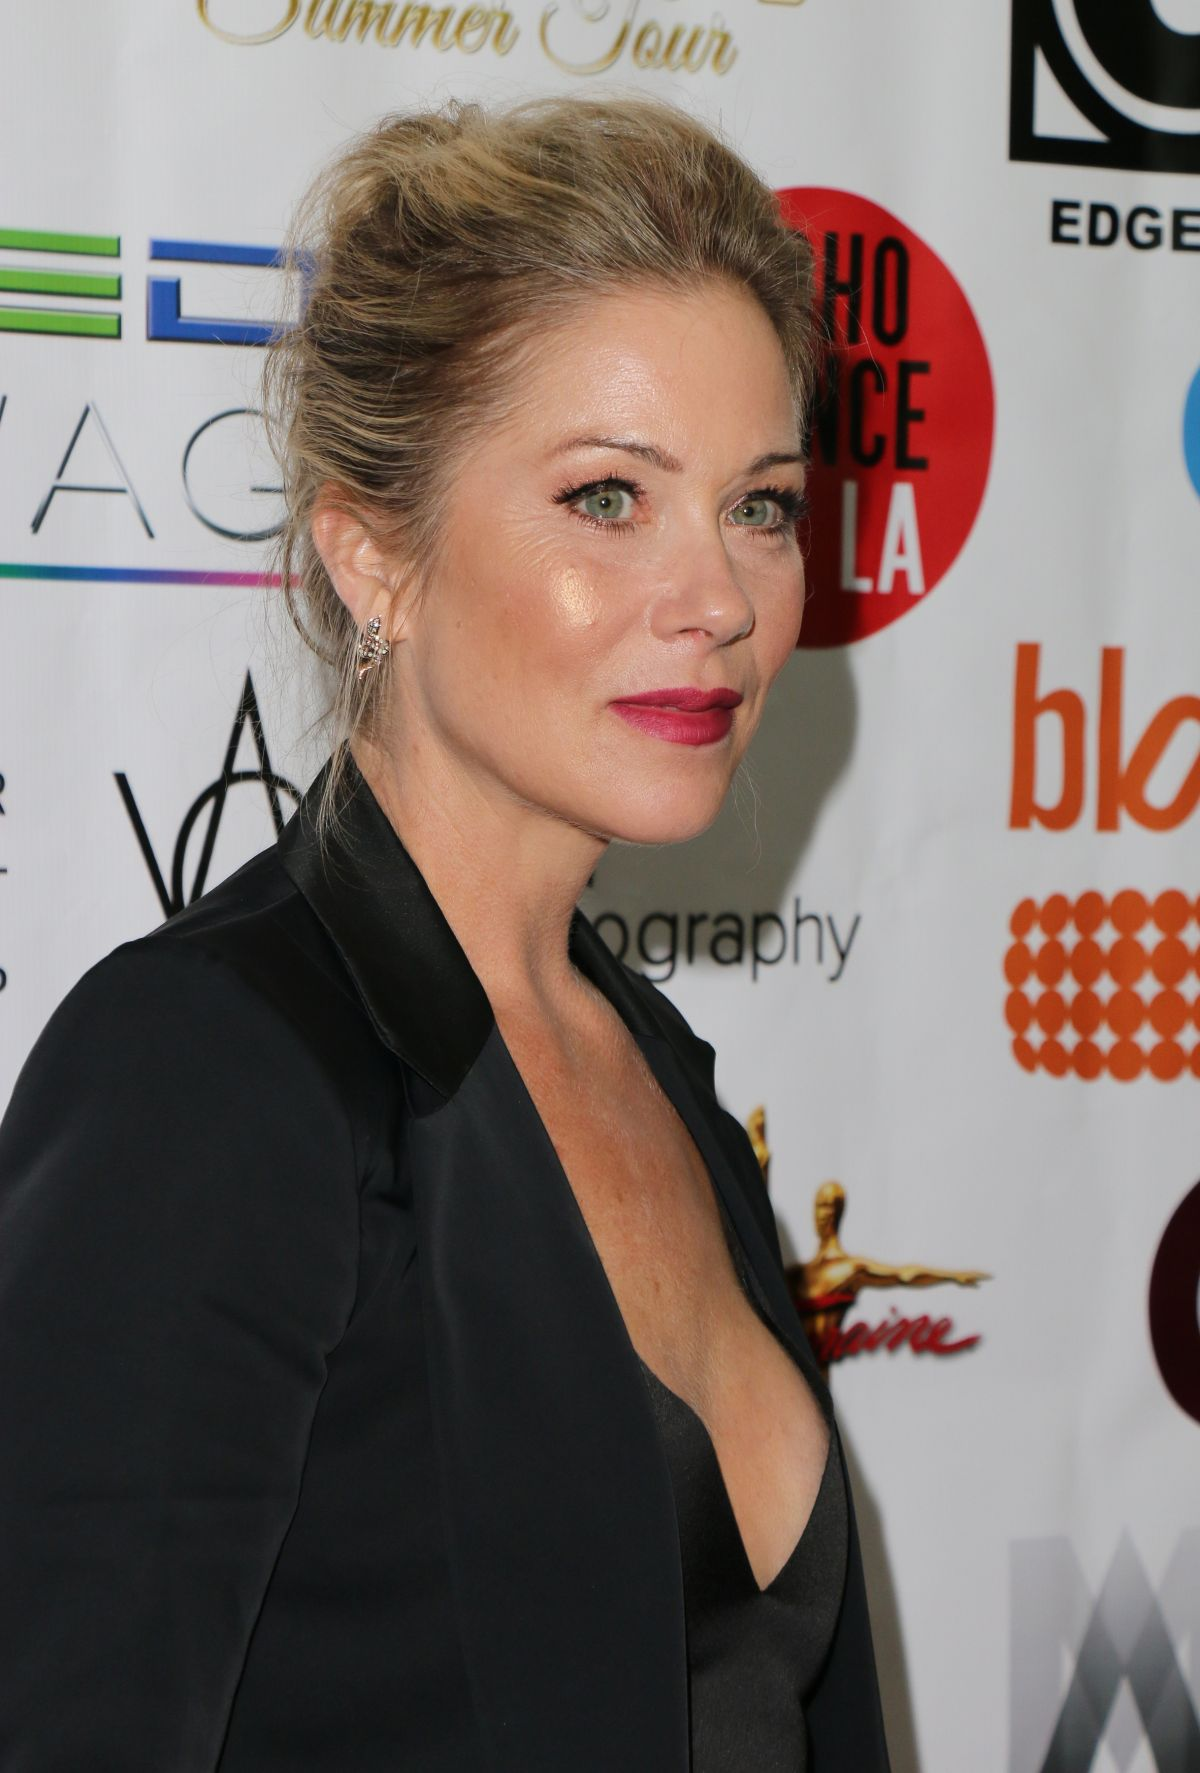 CHRISTINA APPLEGATE at World Choreography Awards in Hollywood 10/24/2016